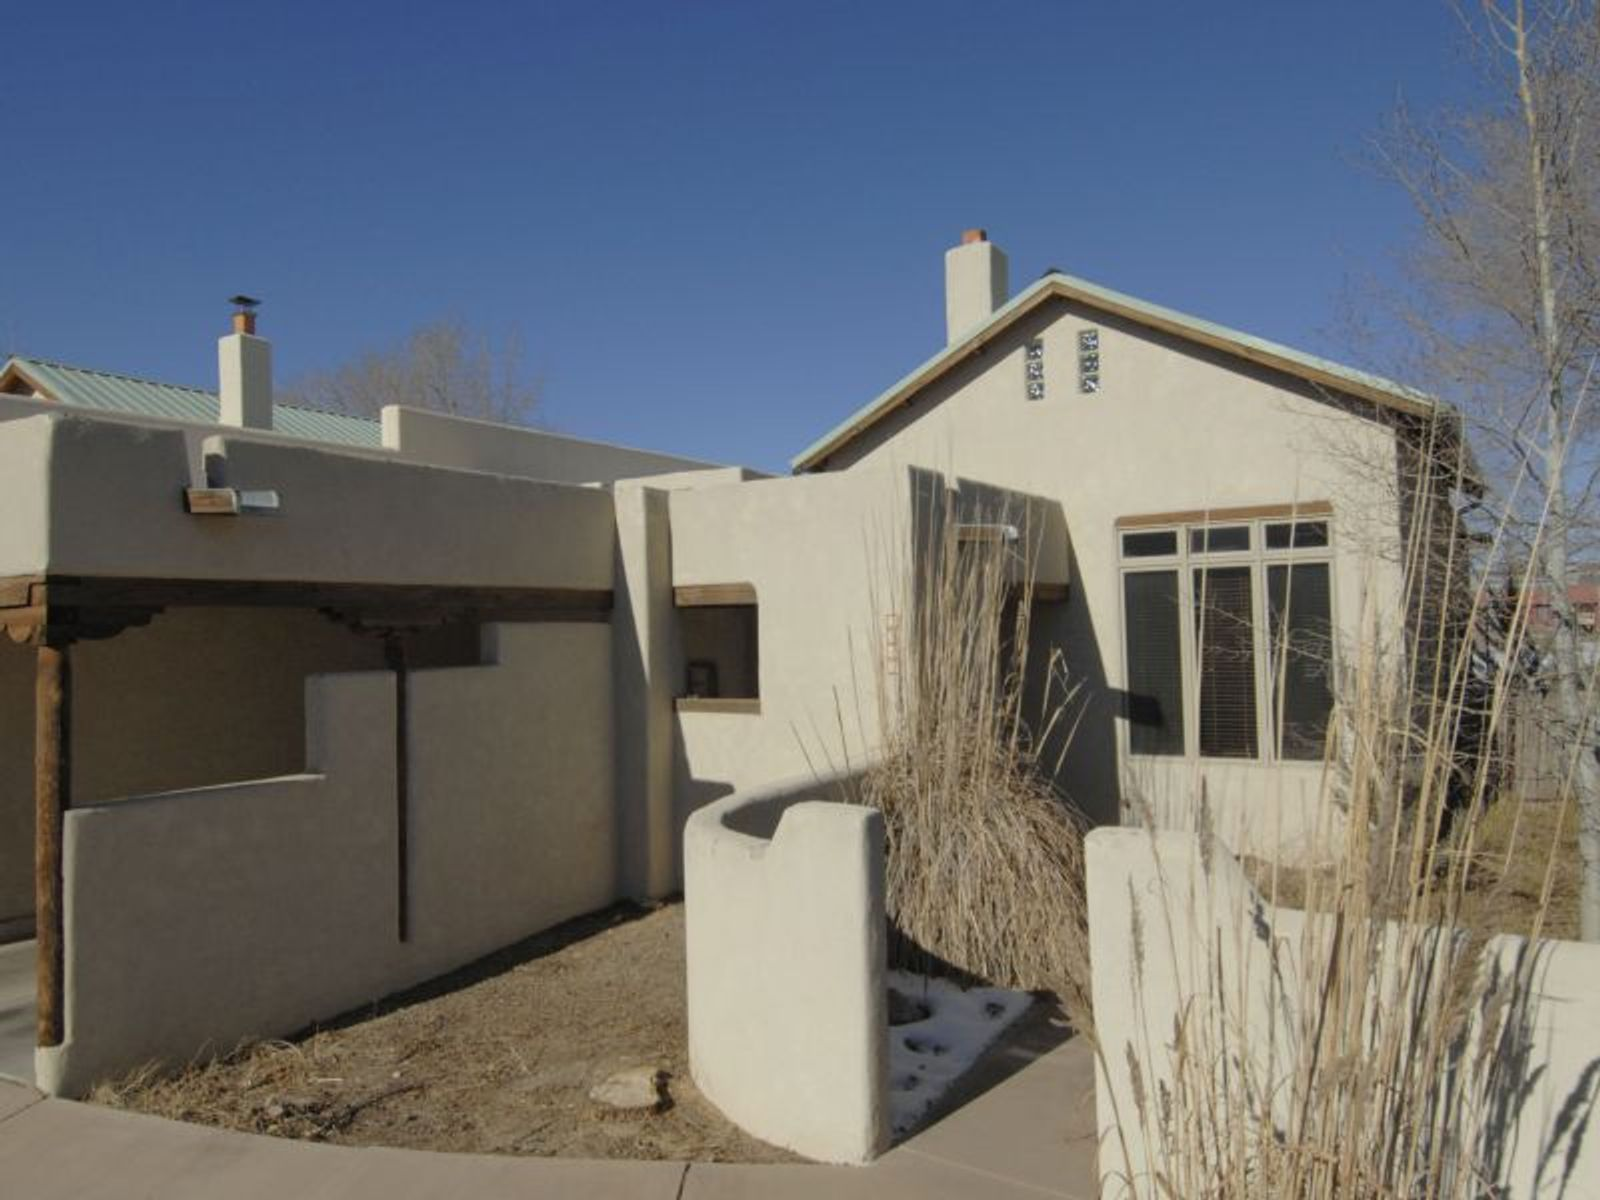 3242 La Paz Lane, Santa Fe NM Single Family Home - Santa Fe Real Estate